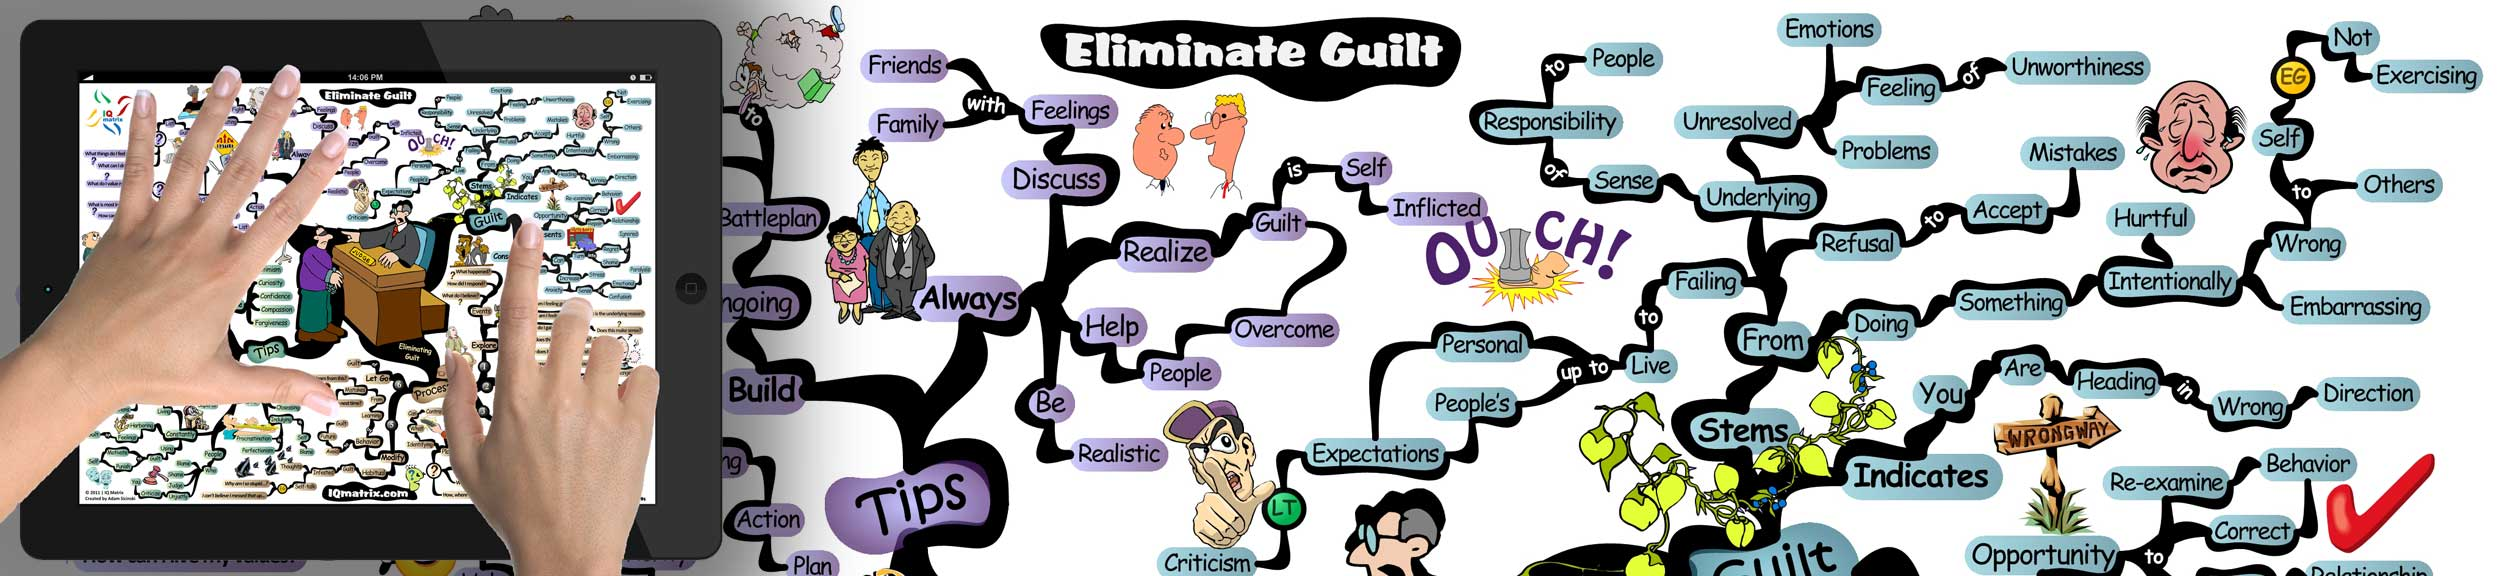 How to Eliminate Guilt